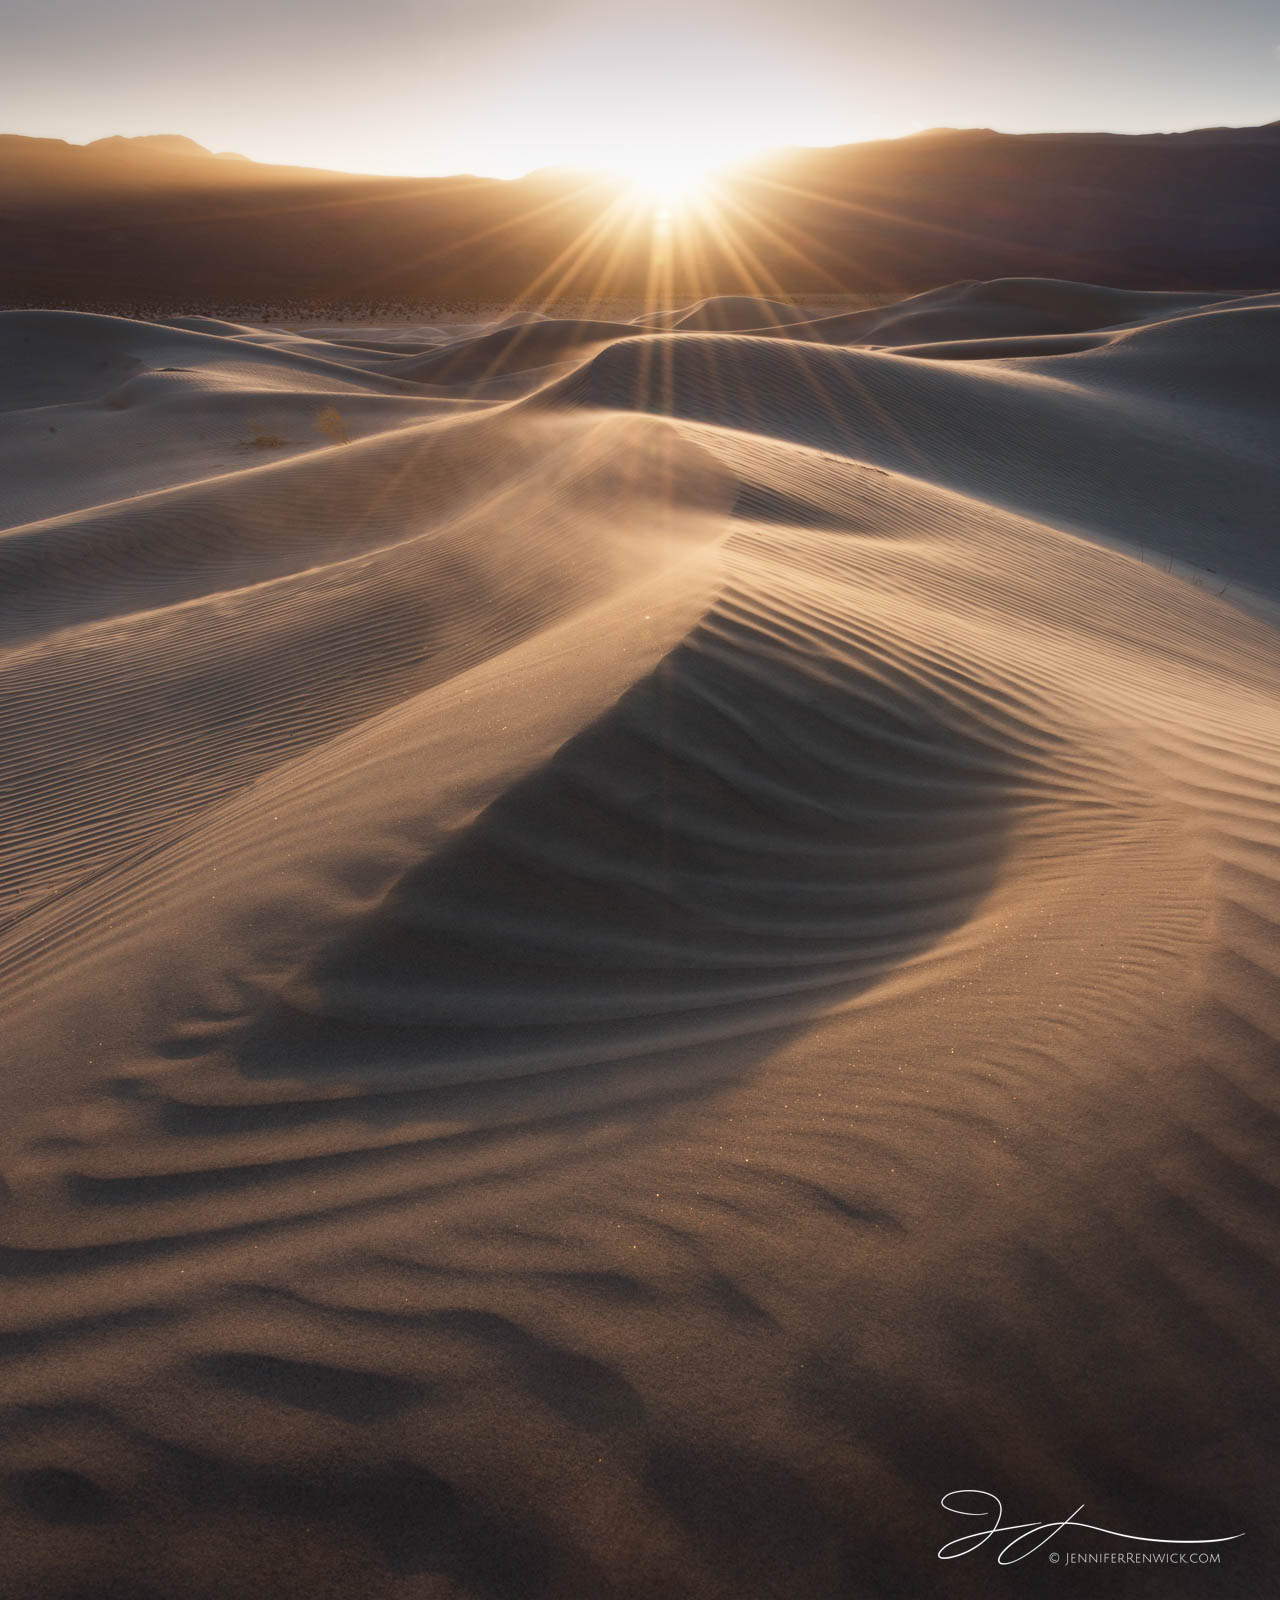 The sun sets over a remote dune field in Death Valley National Park.